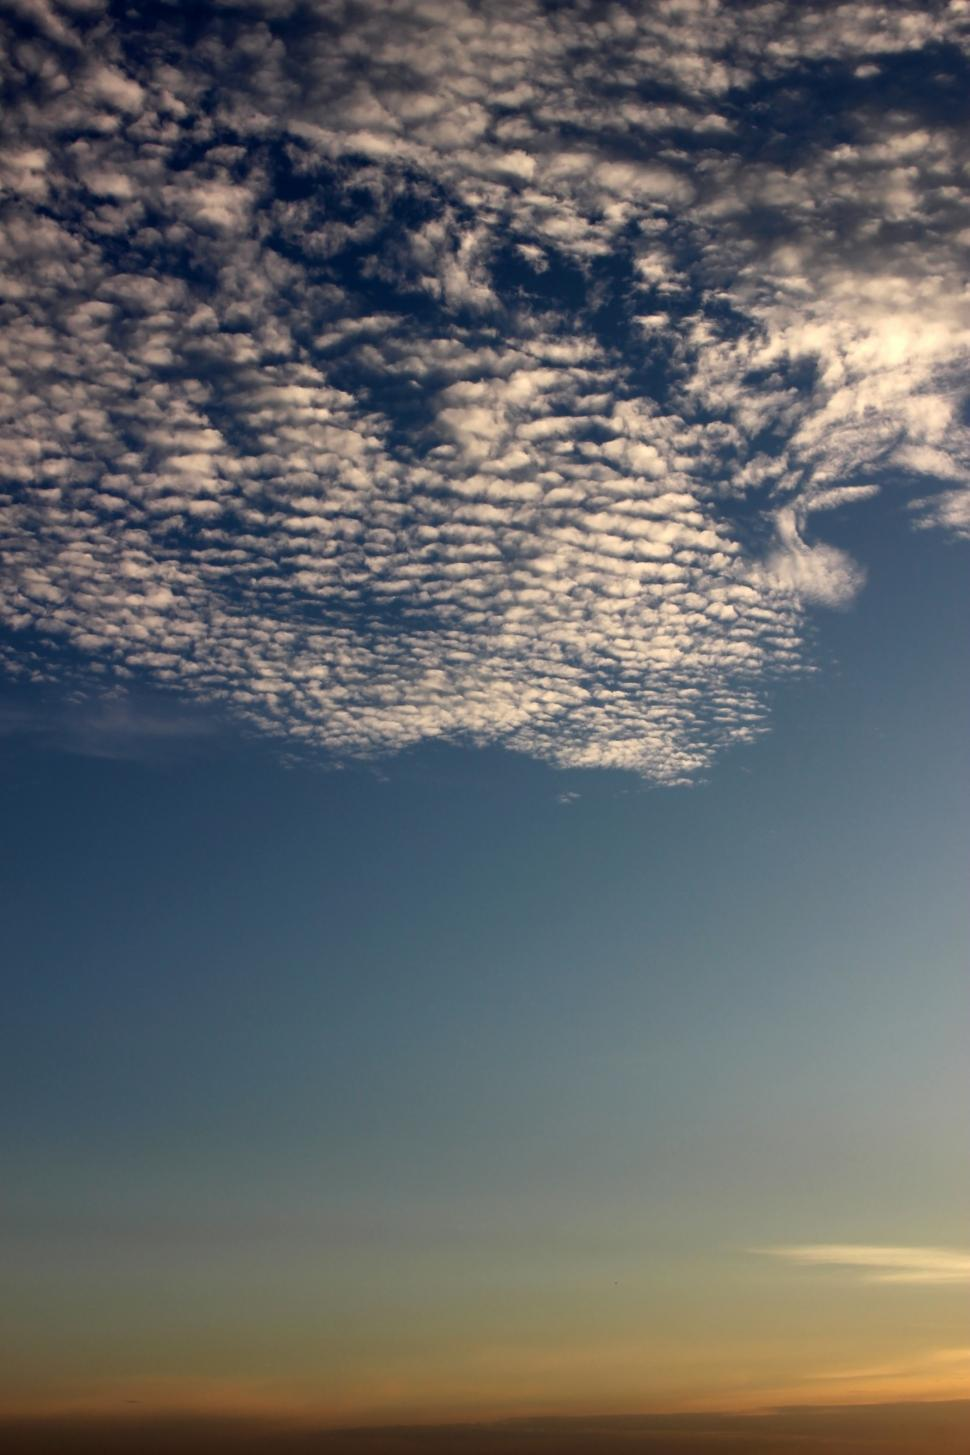 Download Free Stock HD Photo of Background of half clear blue sky and half broken clouds  Online